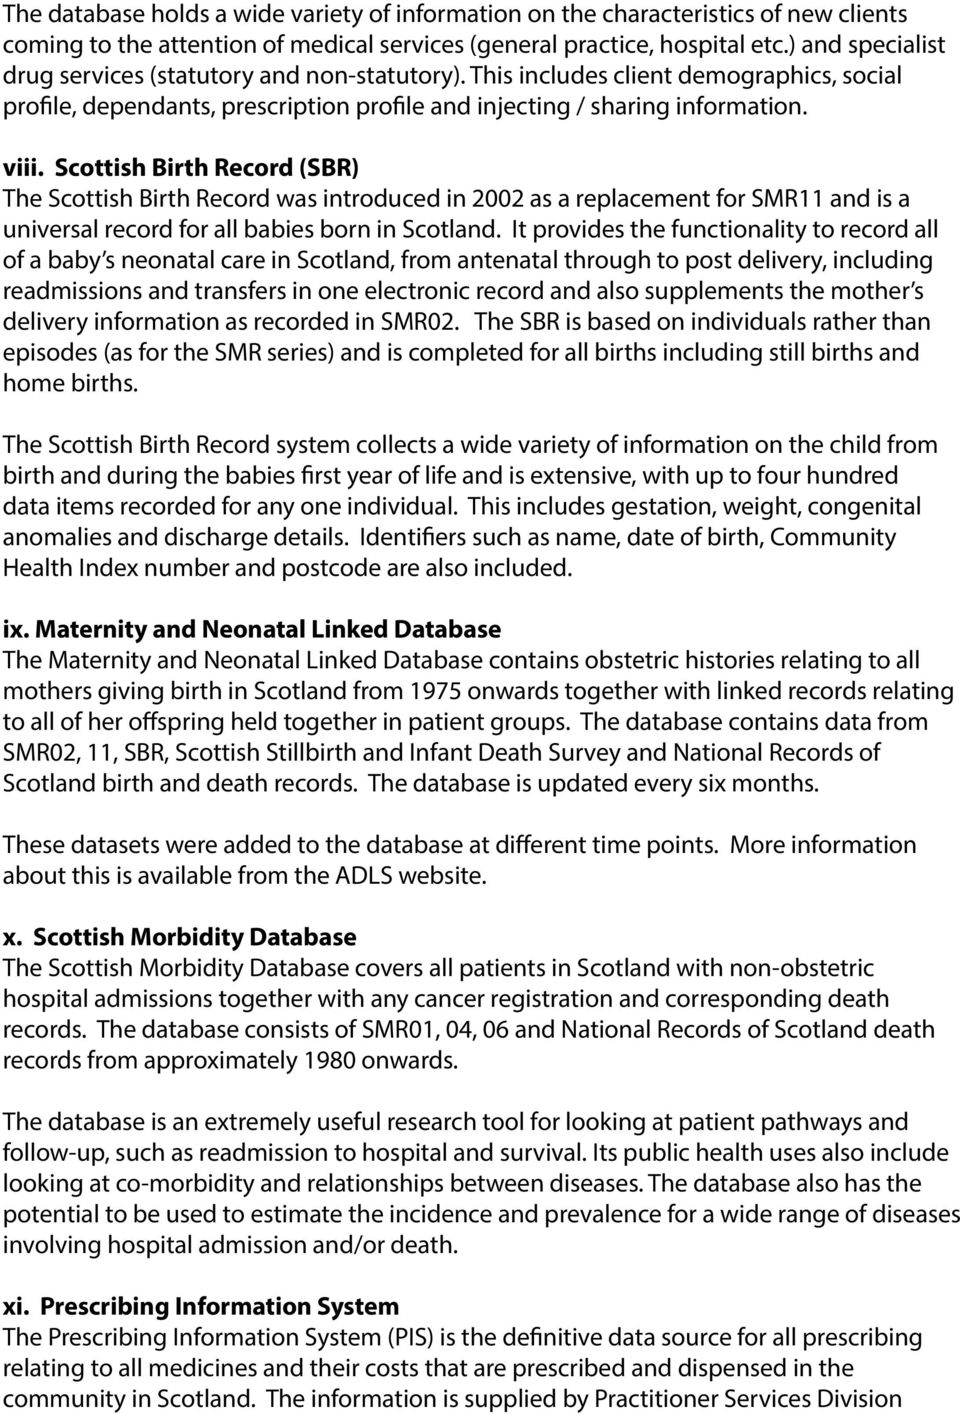 Scottish Birth Record (SBR) The Scottish Birth Record was introduced in 2002 as a replacement for SMR11 and is a universal record for all babies born in Scotland.